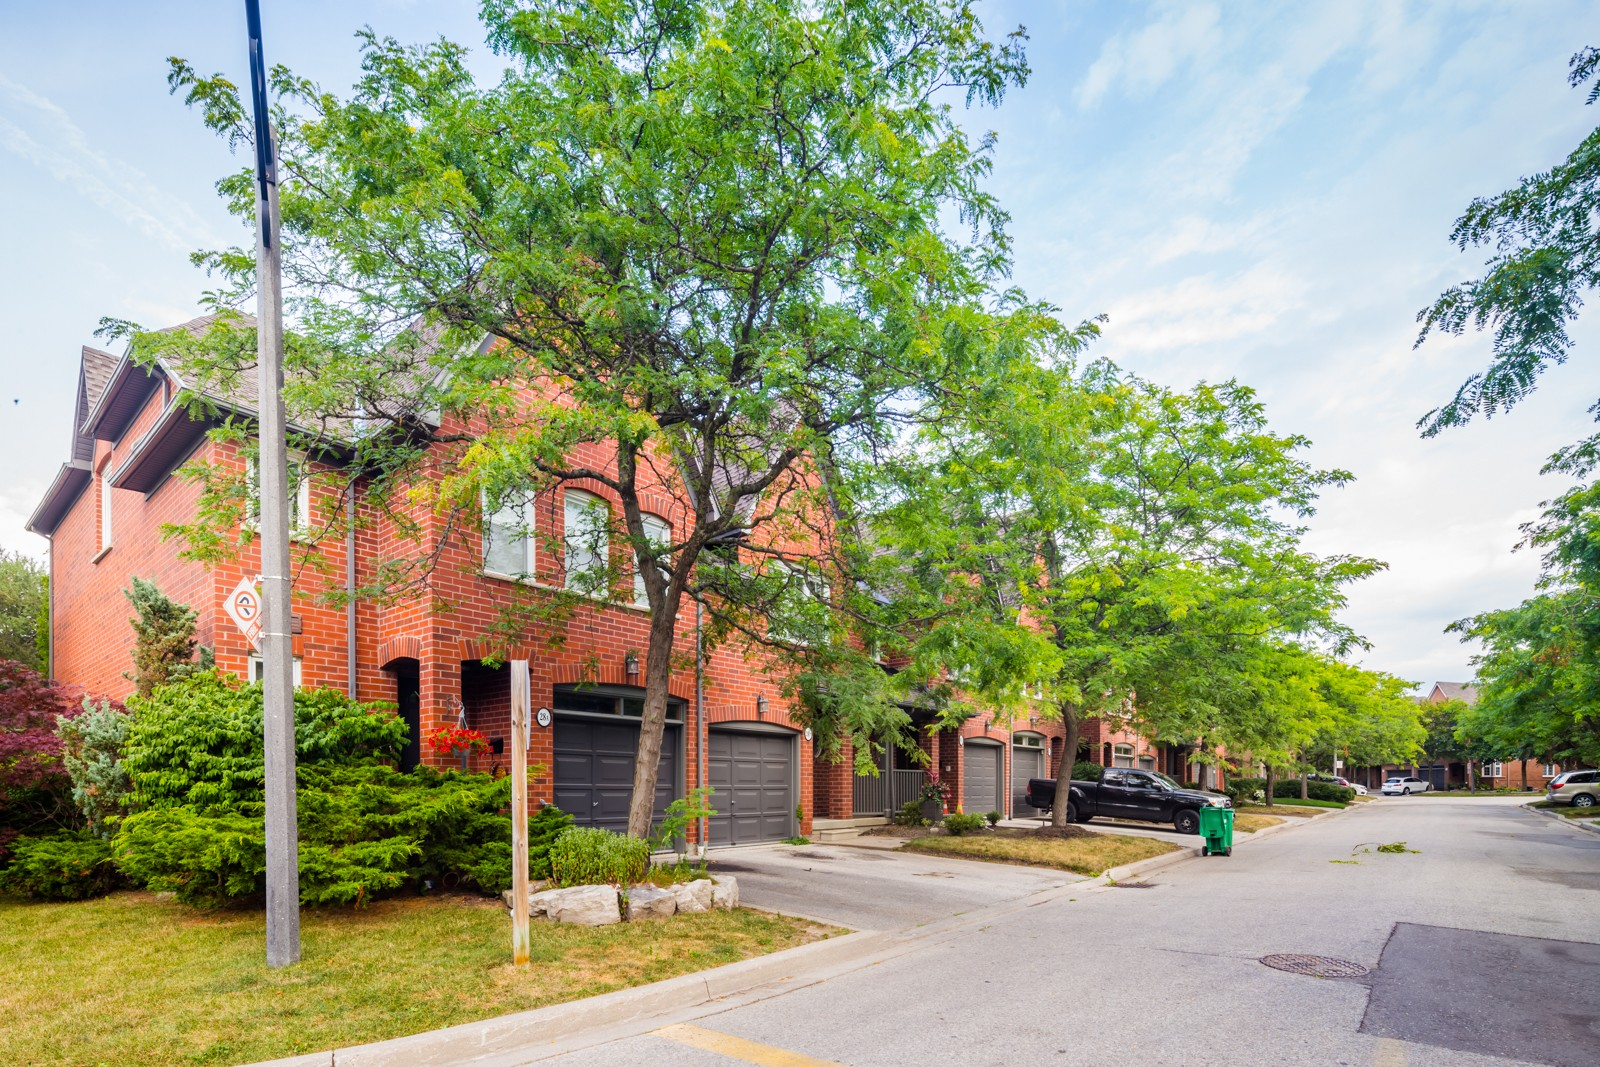 1100 Queen Street West Townhouses at 1100 Queen St W, Mississauga 1